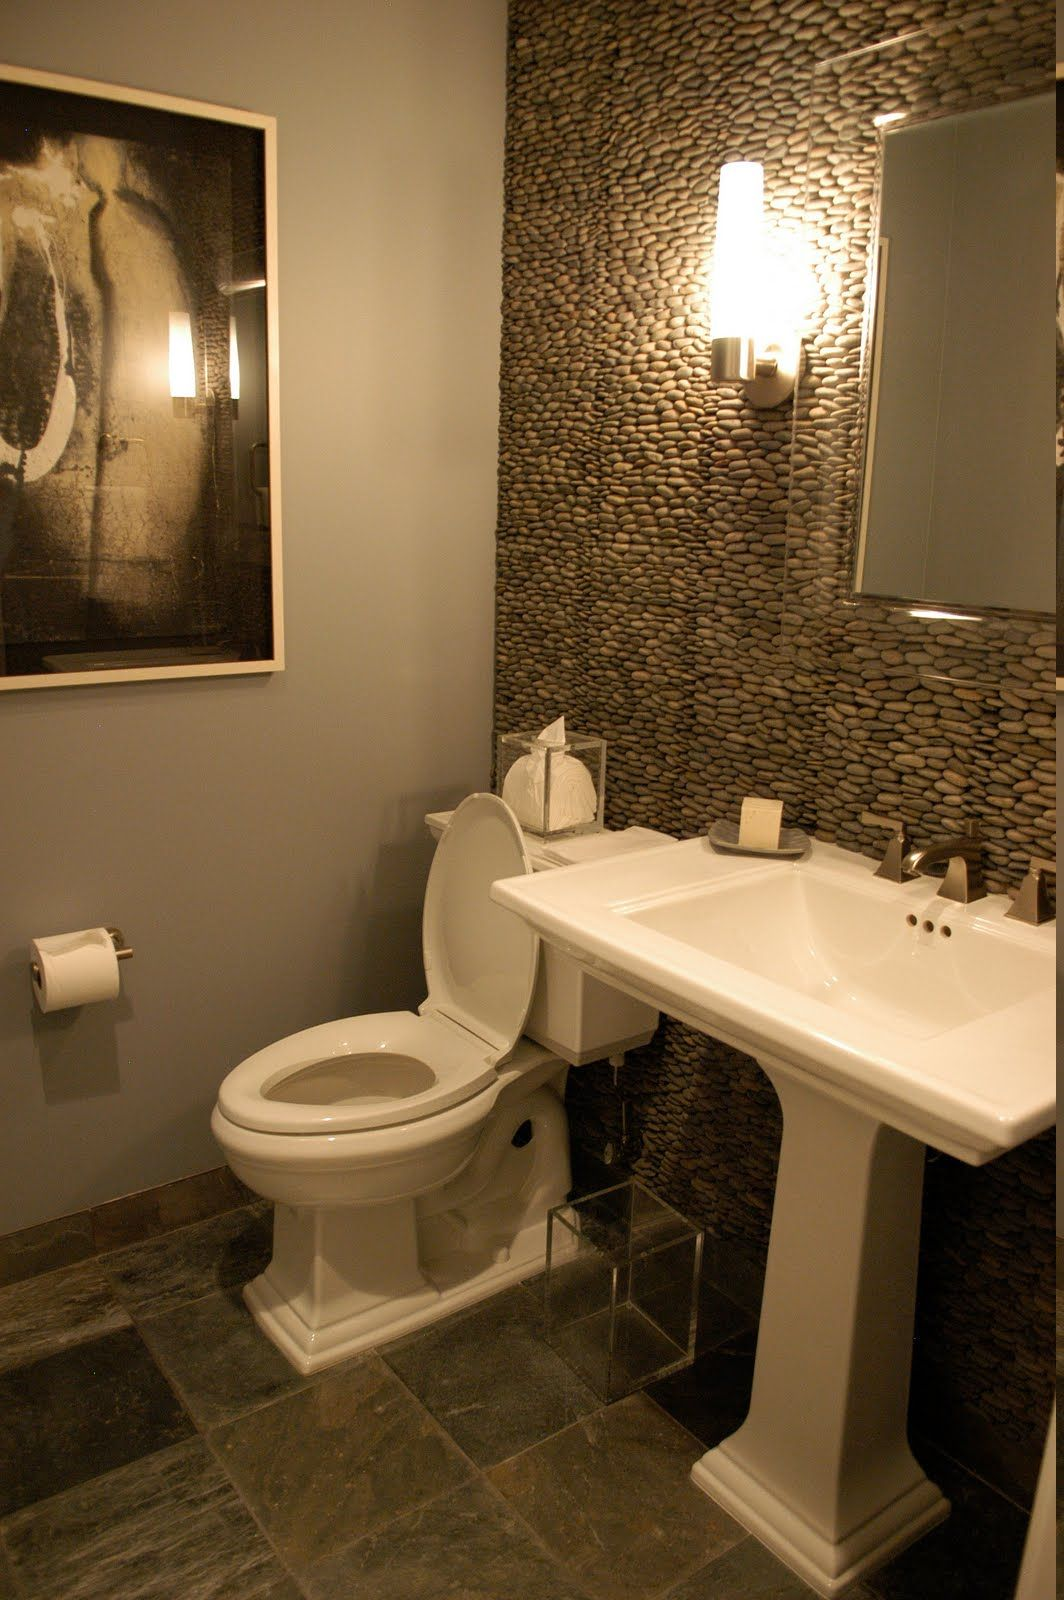 Powder room decorating ideas become very interesting idea for you to apply in your home also rh pinterest